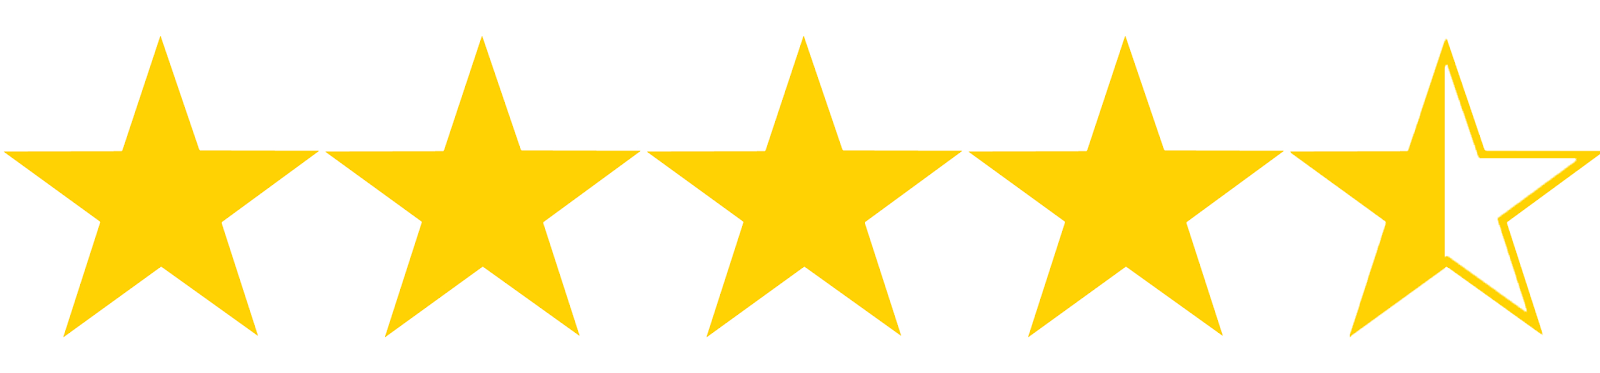 Image result for 4 and a half star rating